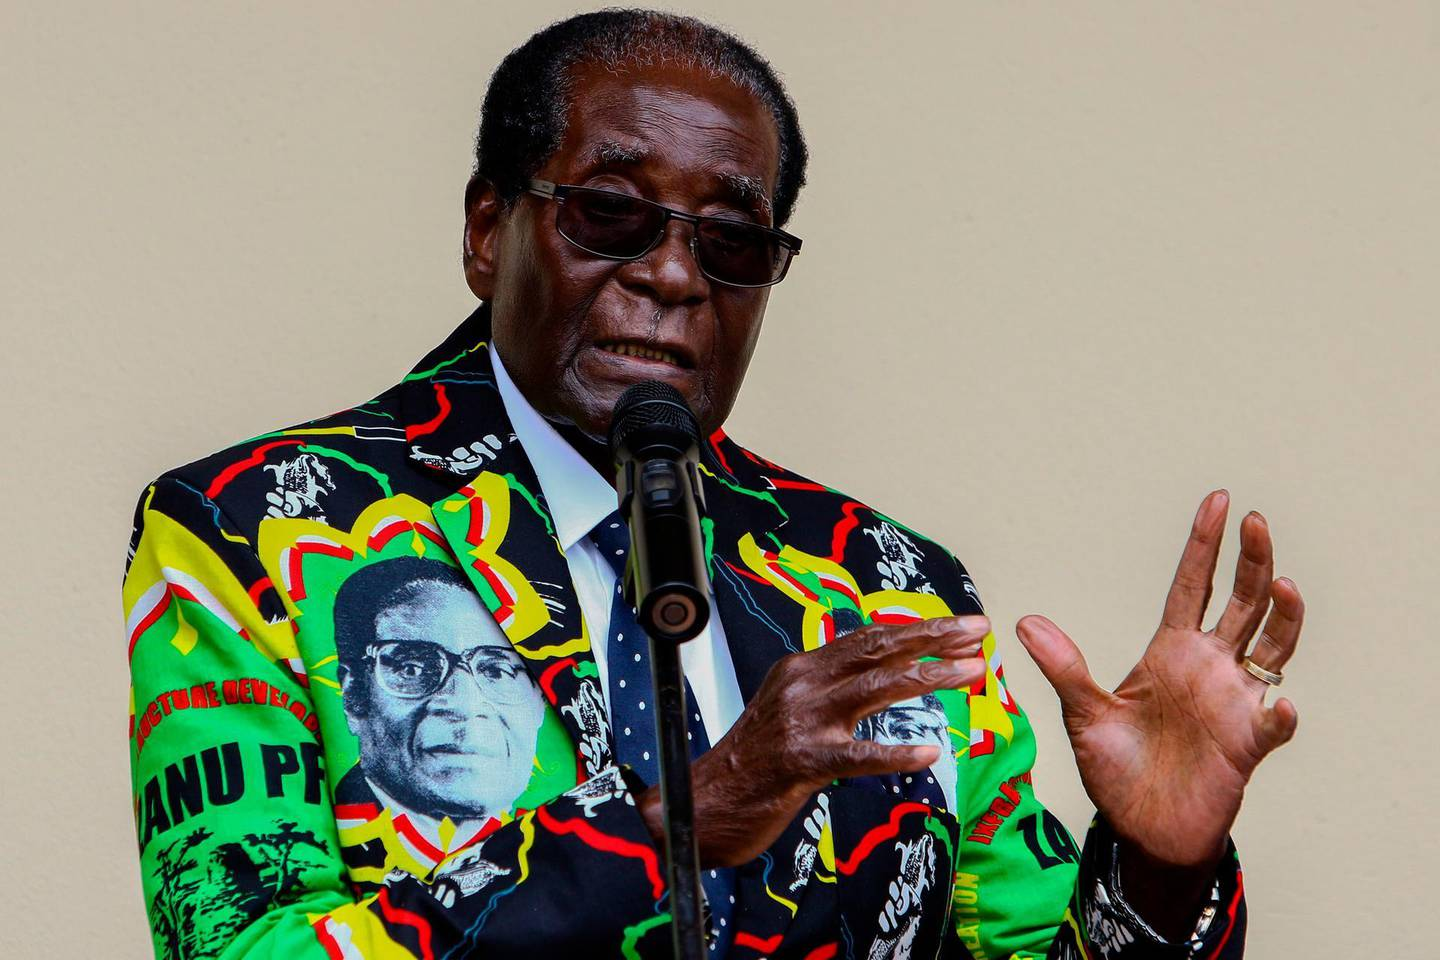 (FILES) In this file photo taken on December 17, 2016 Zimbabwe then President Robert Mugabe speaks at the party's annual conference in Masvingo. Robert Mugabe, who led Zimbabwe with an iron fist from 1980 to 2017, has died aged 95, Zimbabwe President Emmerson Mnangagwa announced September 6, 2019. / AFP / Jekesai NJIKIZANA